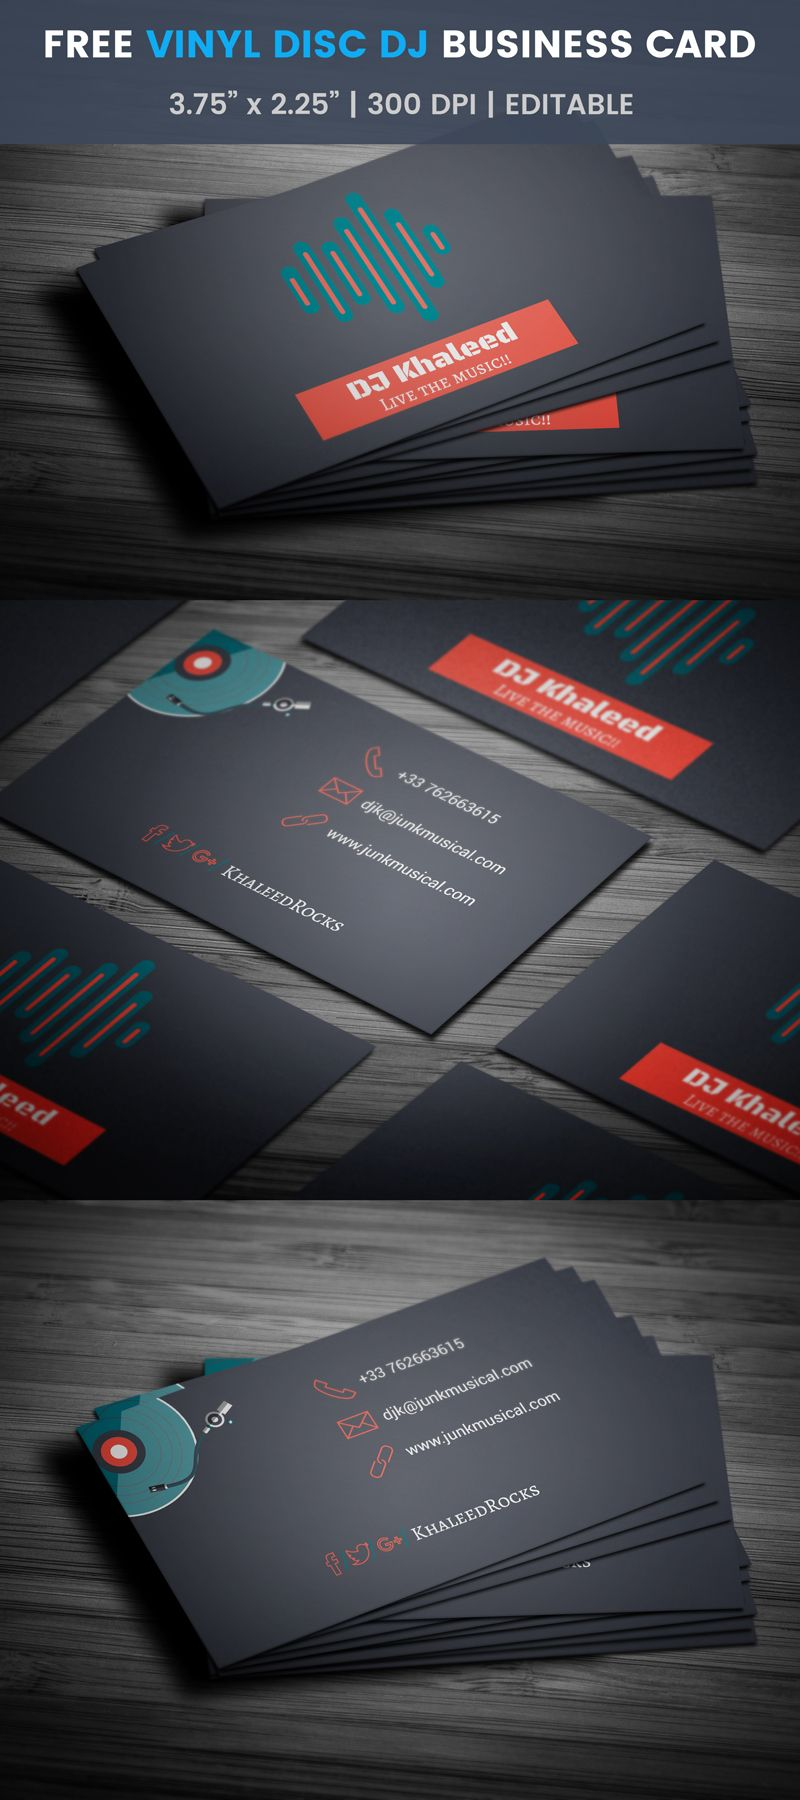 Free free djing business card dj business cards card templates free djing business card template reheart Image collections